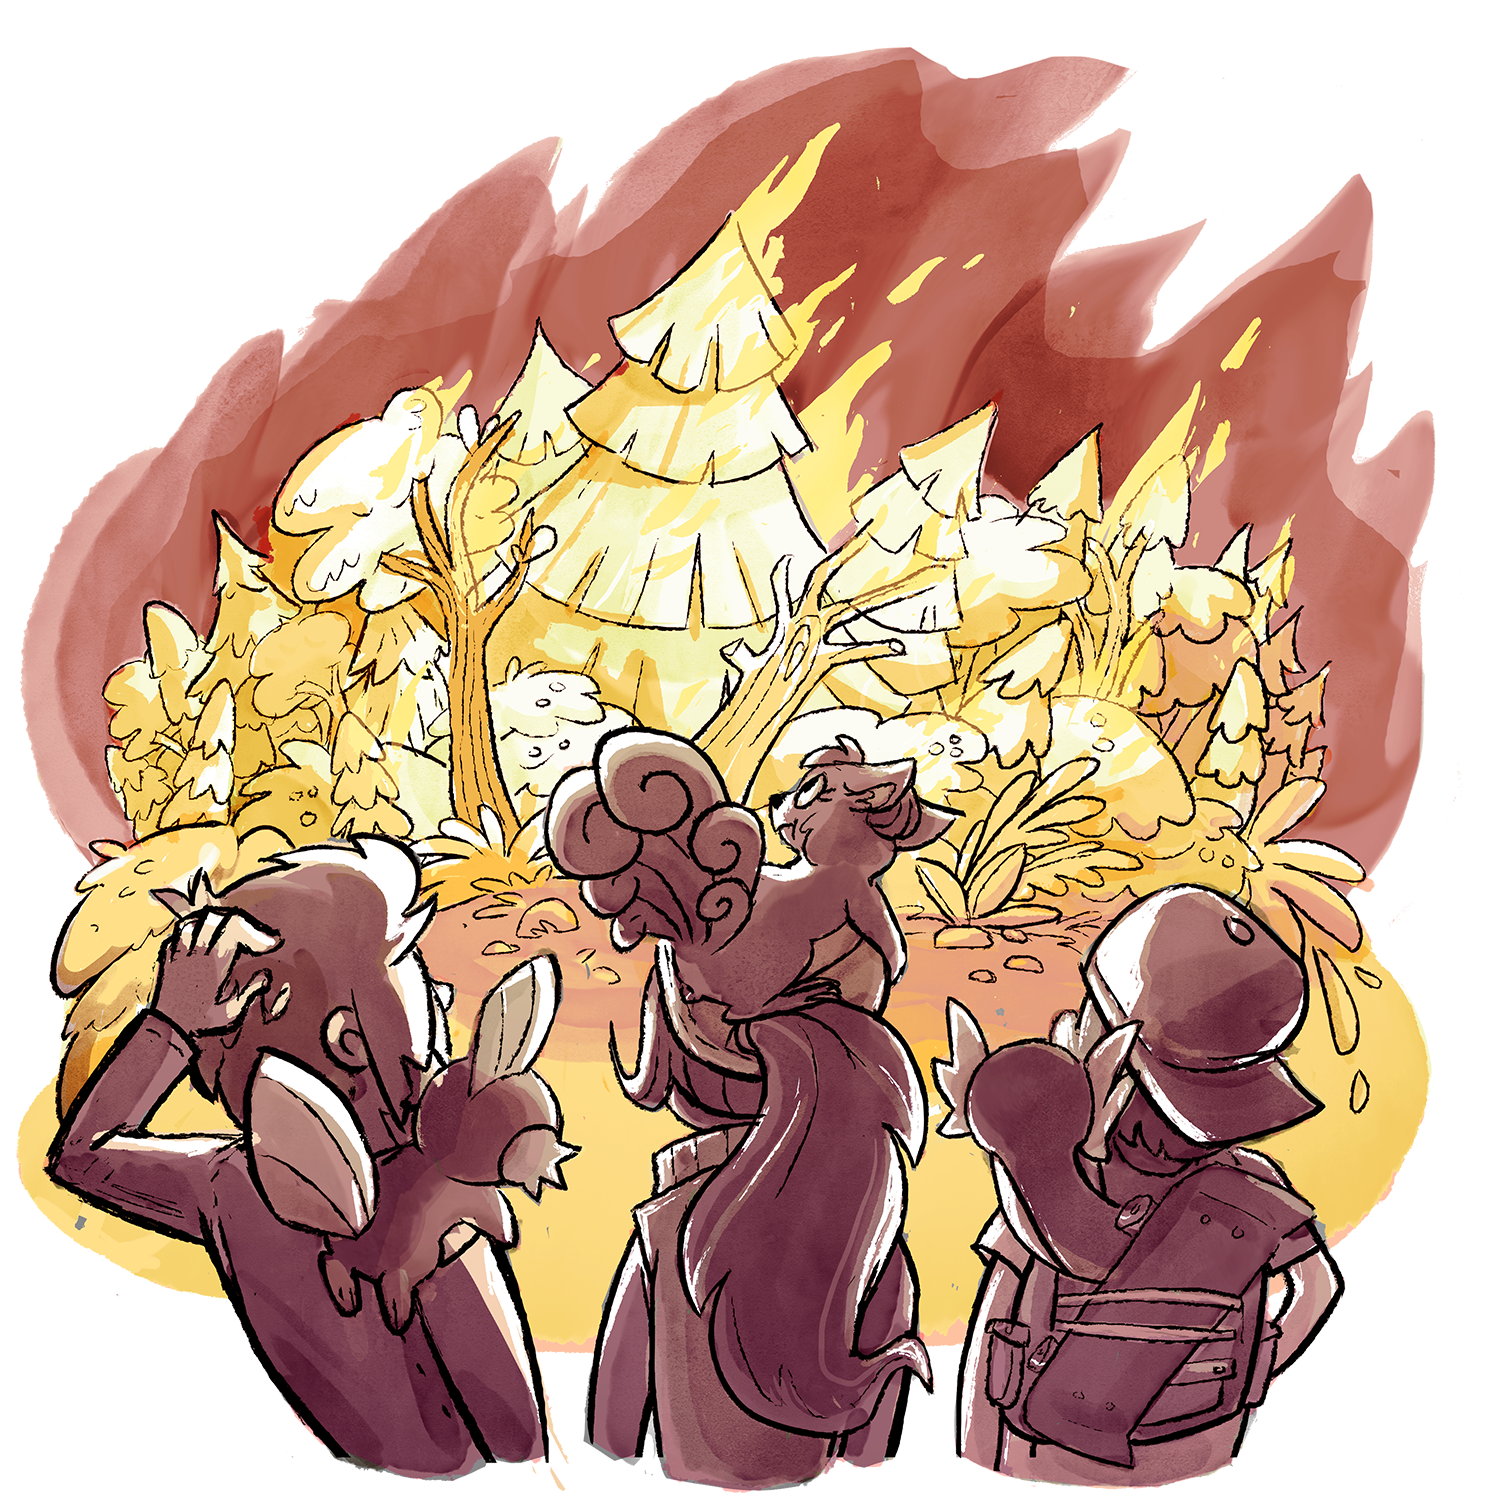 Xander, Candace, and Skip, with their Pokemon on their shoulders, are watching the Viridian Forest Fire they started.